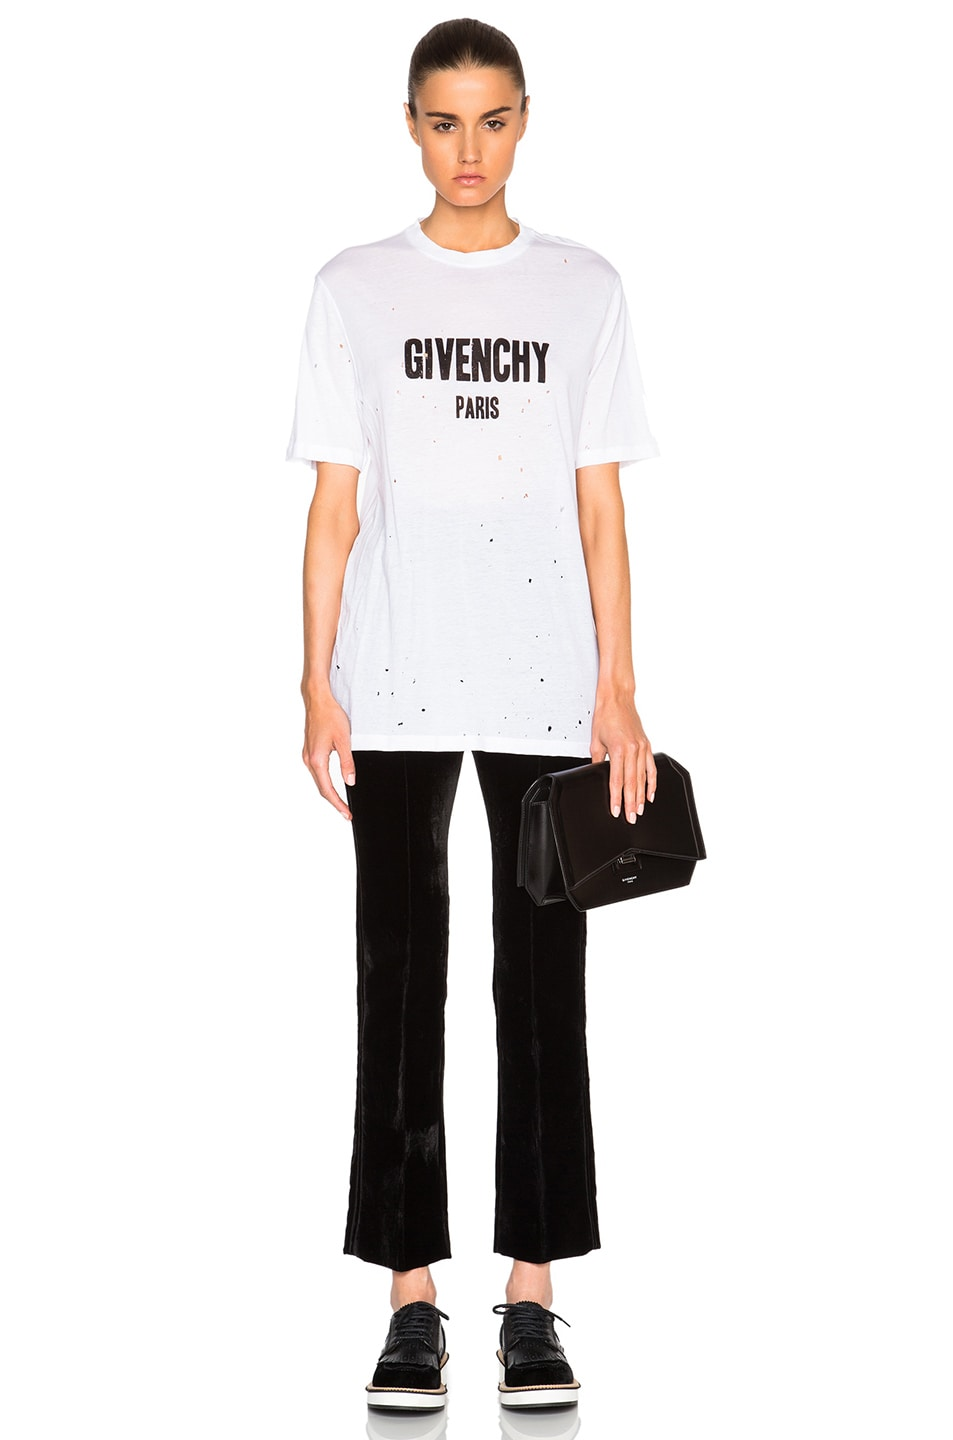 Image 5 of Givenchy Short Sleeve Tee in White